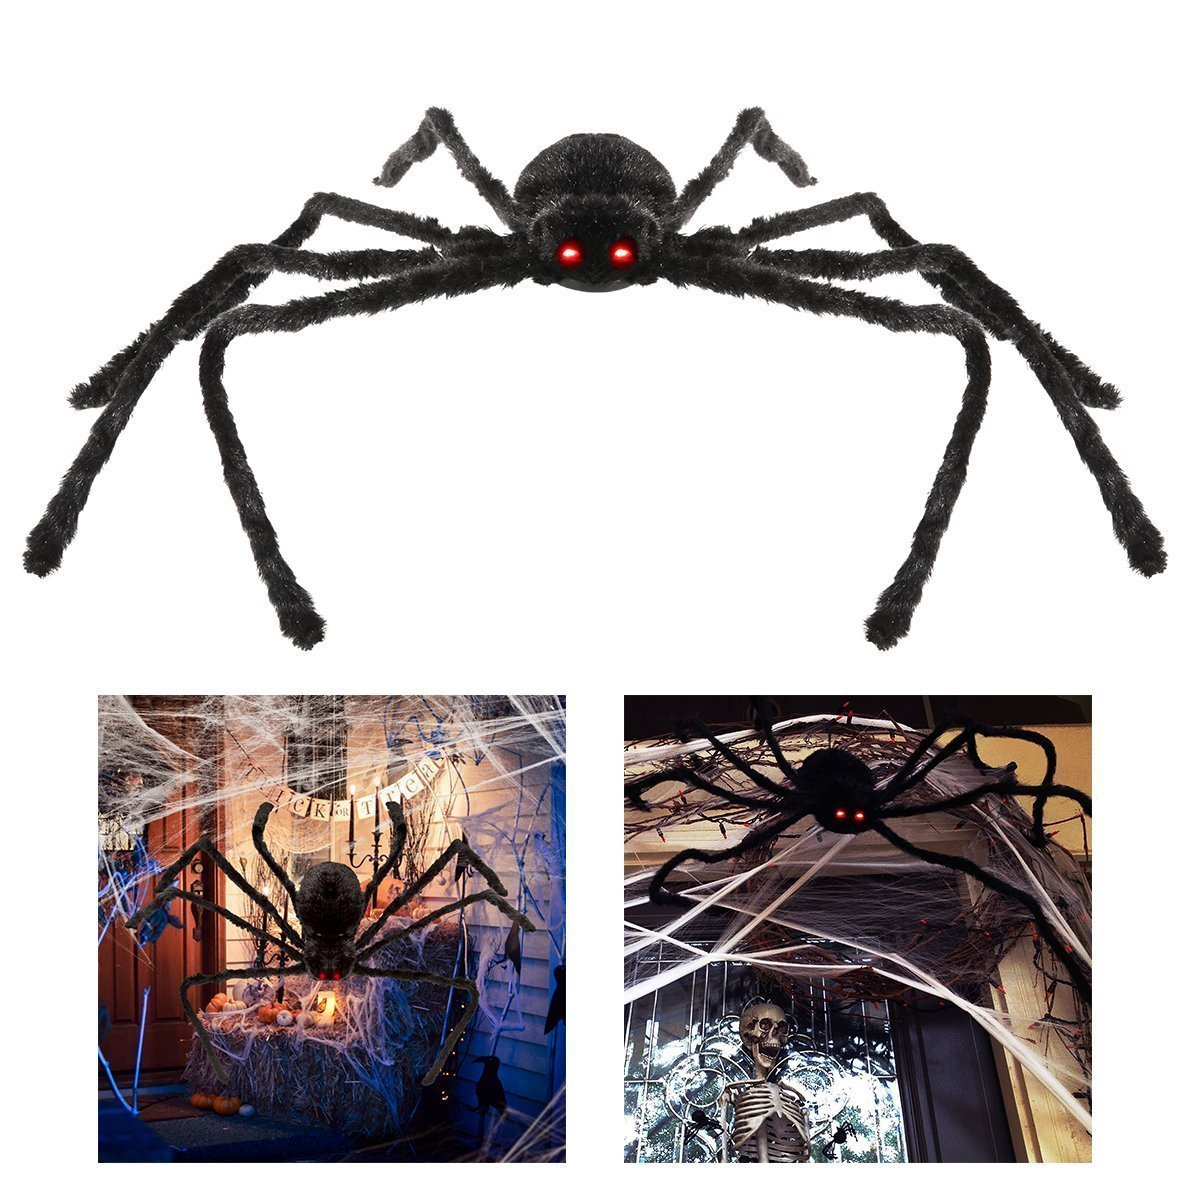 VVigor Giant Halloween Decorations Spiders, Foldable Scary Huge Spiders Haunted House Prop, Outdoor Indoor Yard Décor (1, black) (4.9ft)